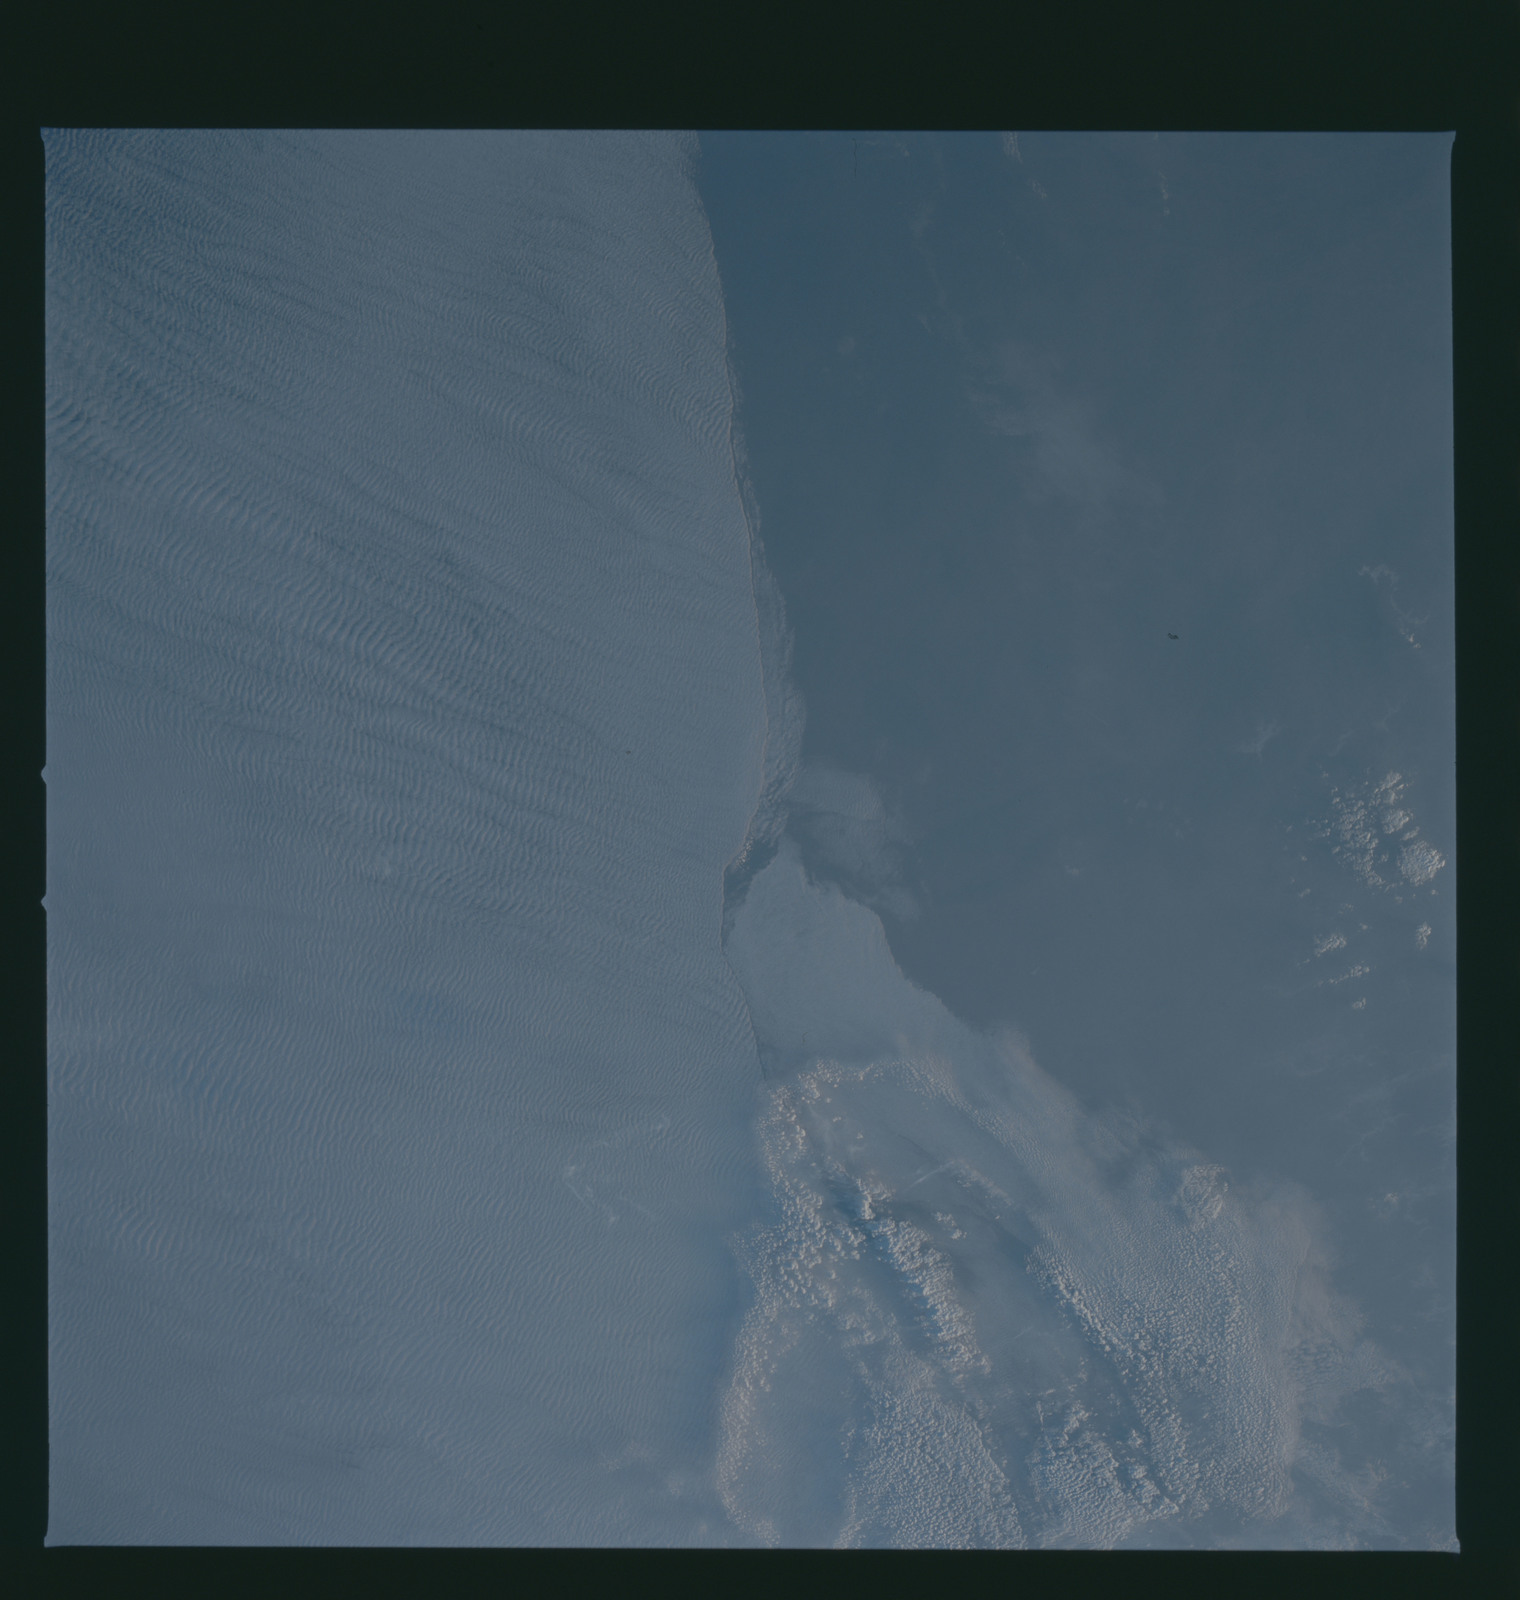 S37-94-049 - STS-037 - Earth observations taken from OV-104 during STS-37 mission